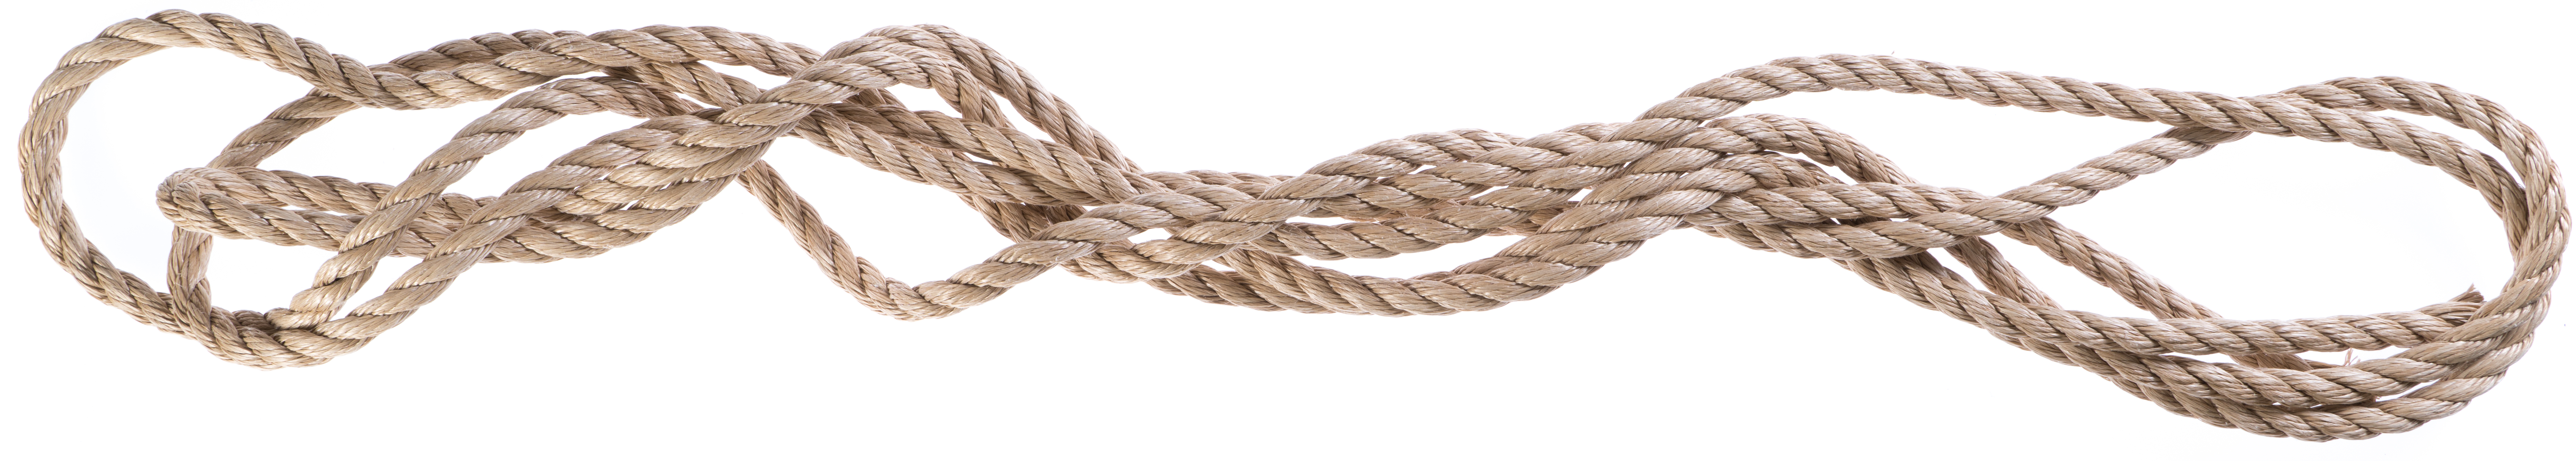 A coil of rope